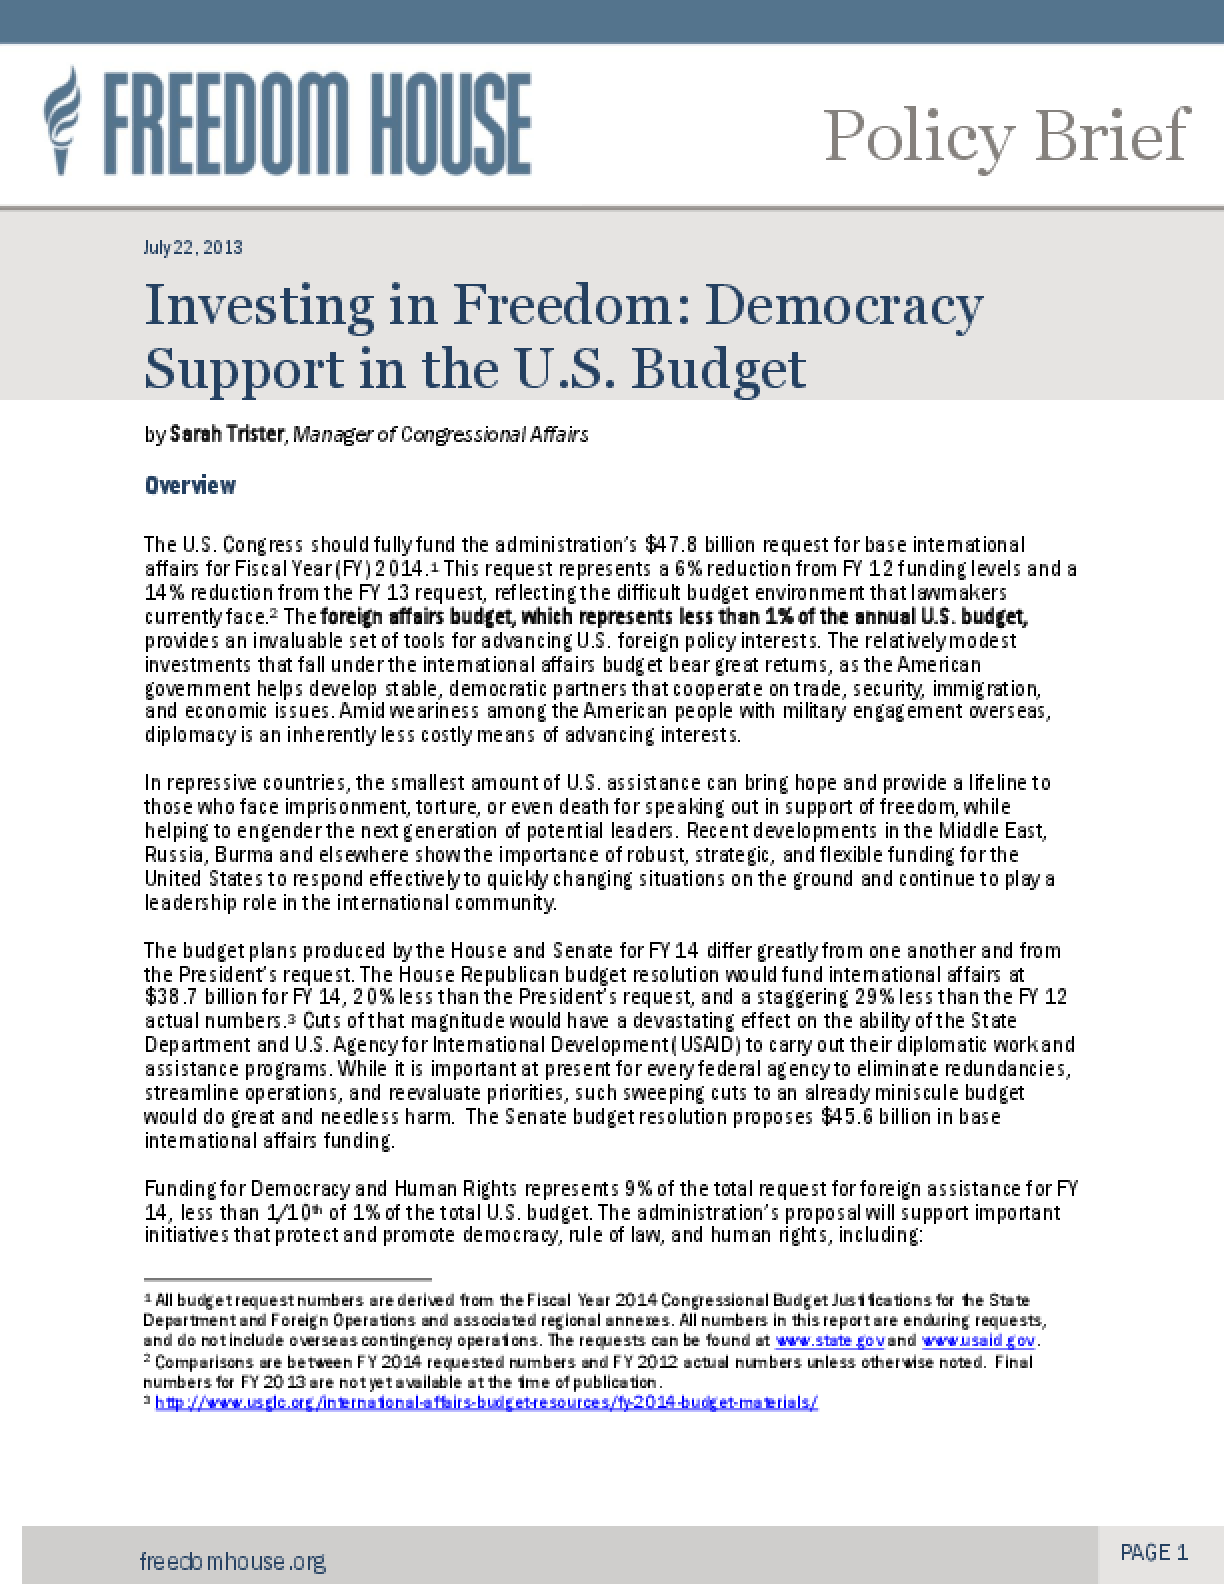 Investing in Freedom: Democracy Support in the U.S. Budget